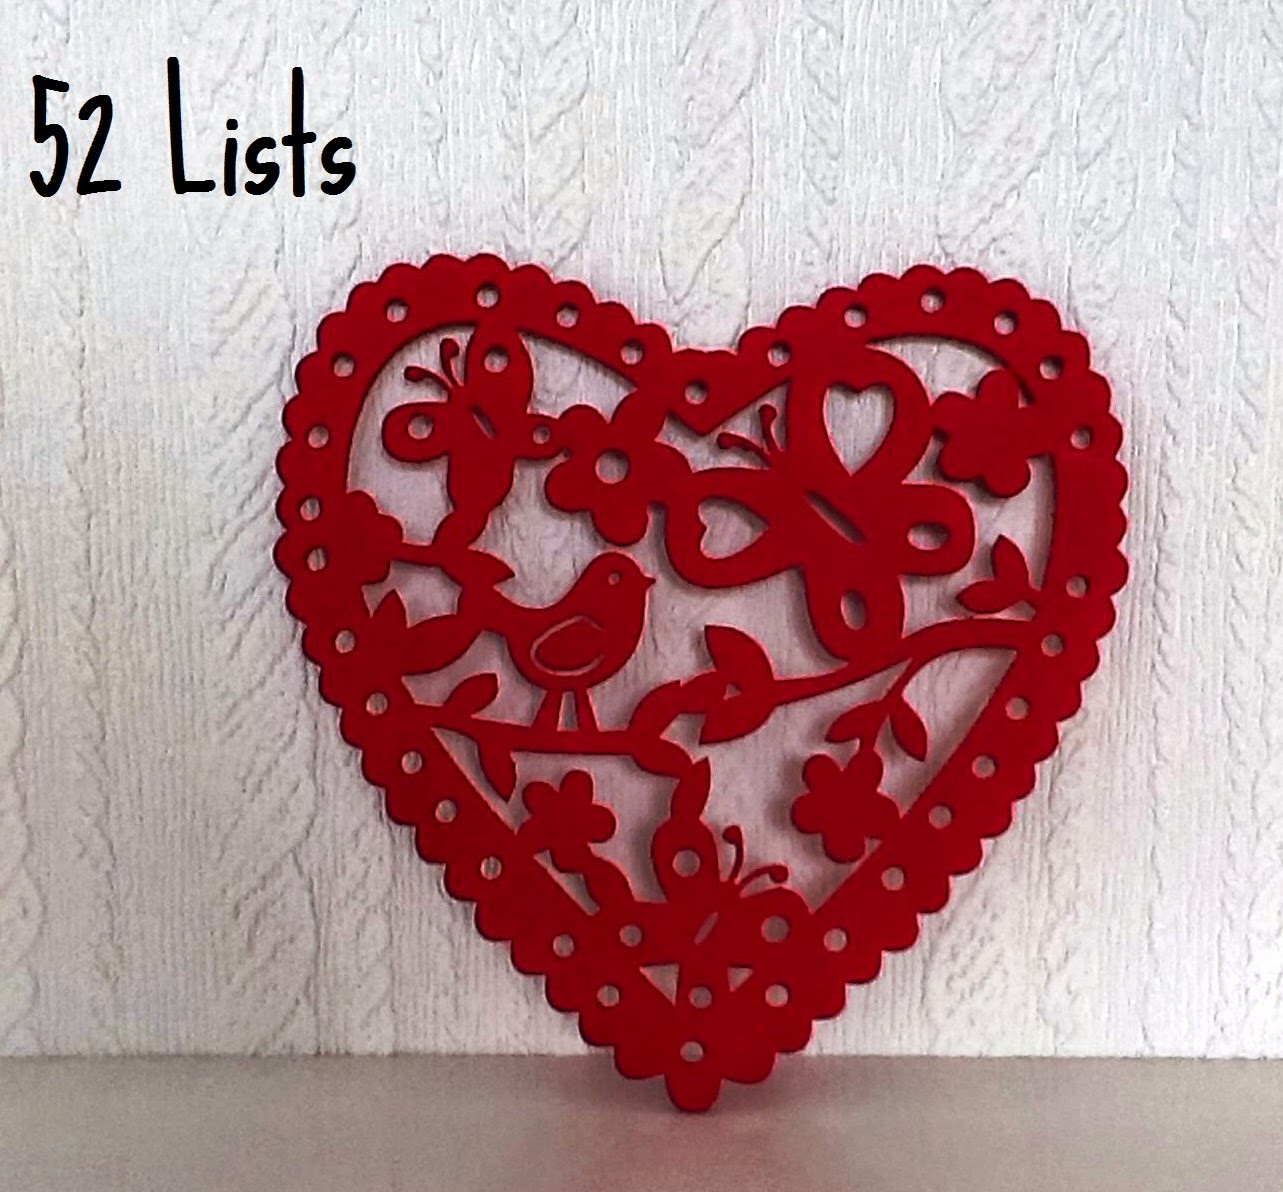 52 Lists - Things That Warm Your Heart